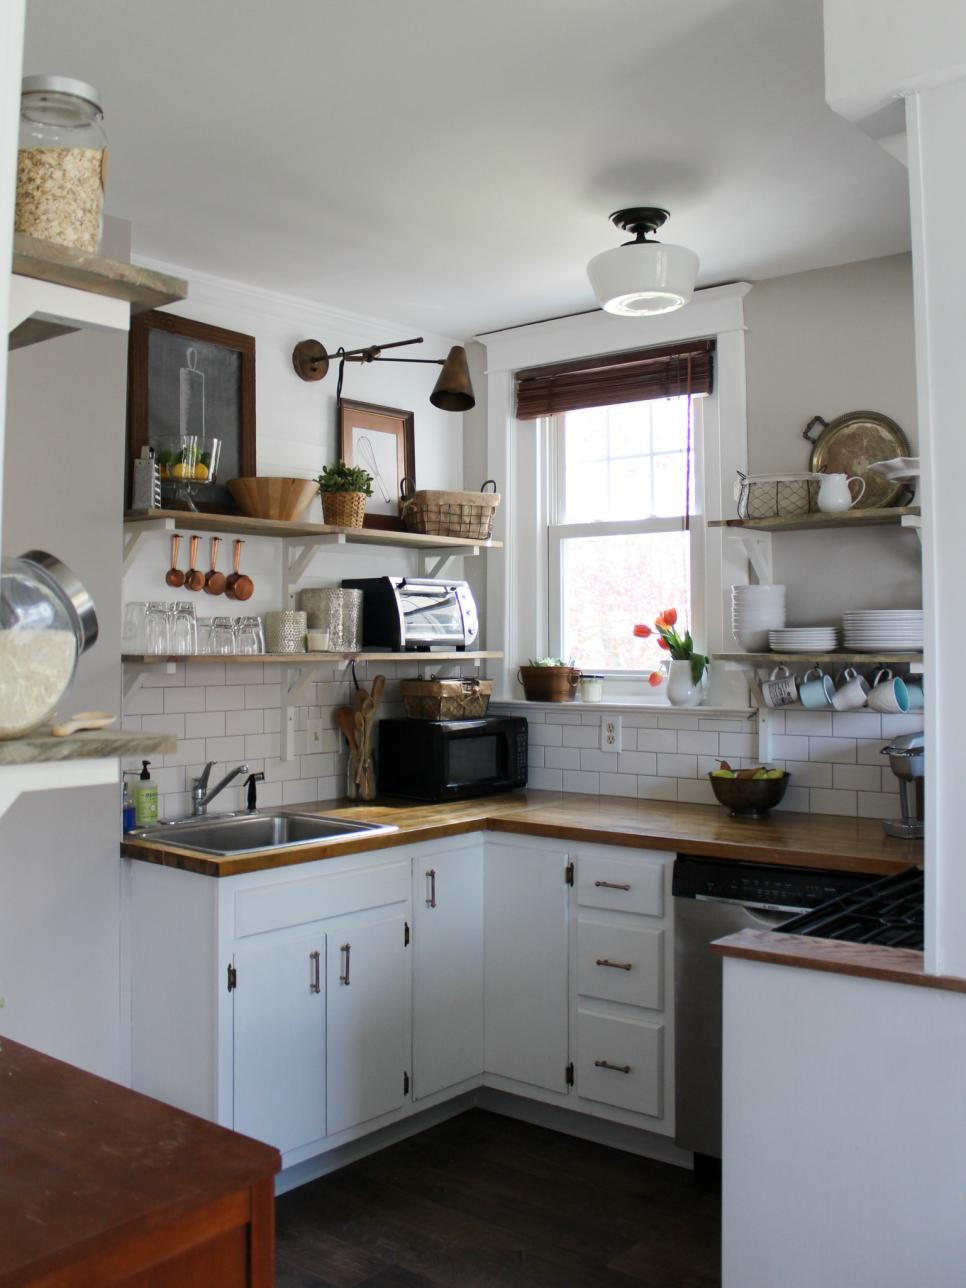 Before and after kitchen remodels on a budget hgtv for Tiny kitchen remodel